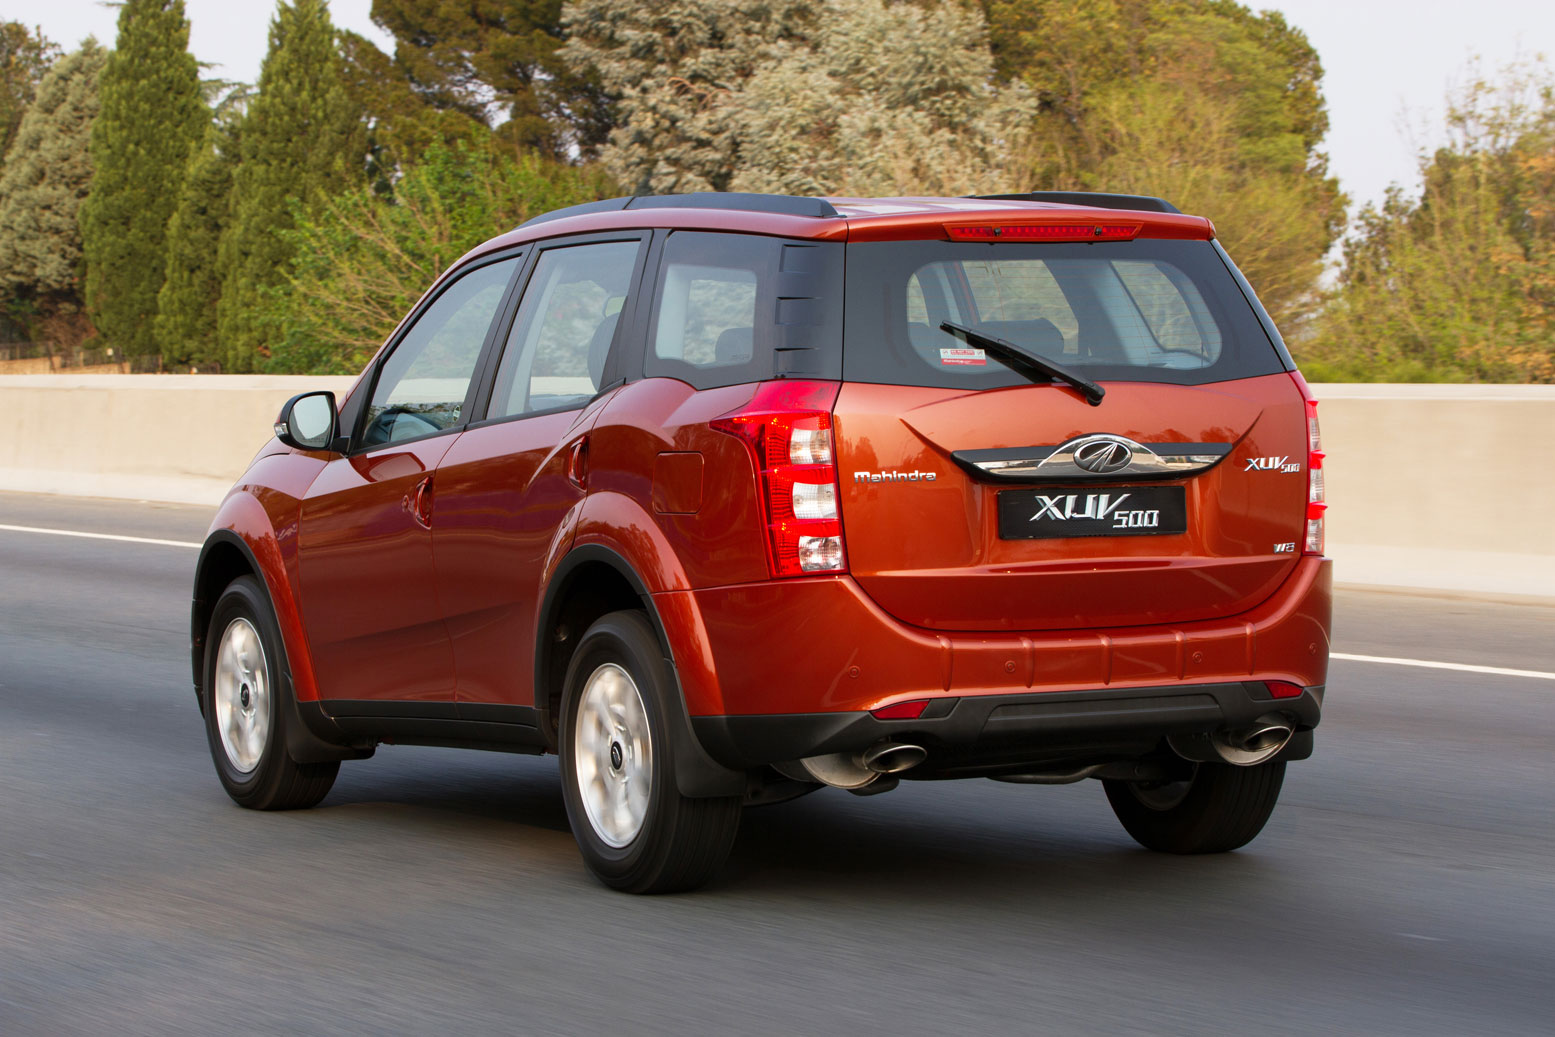 The Mahindra XUV500 is upgraded with Cheetah-inspired styling. Picture: Supplied